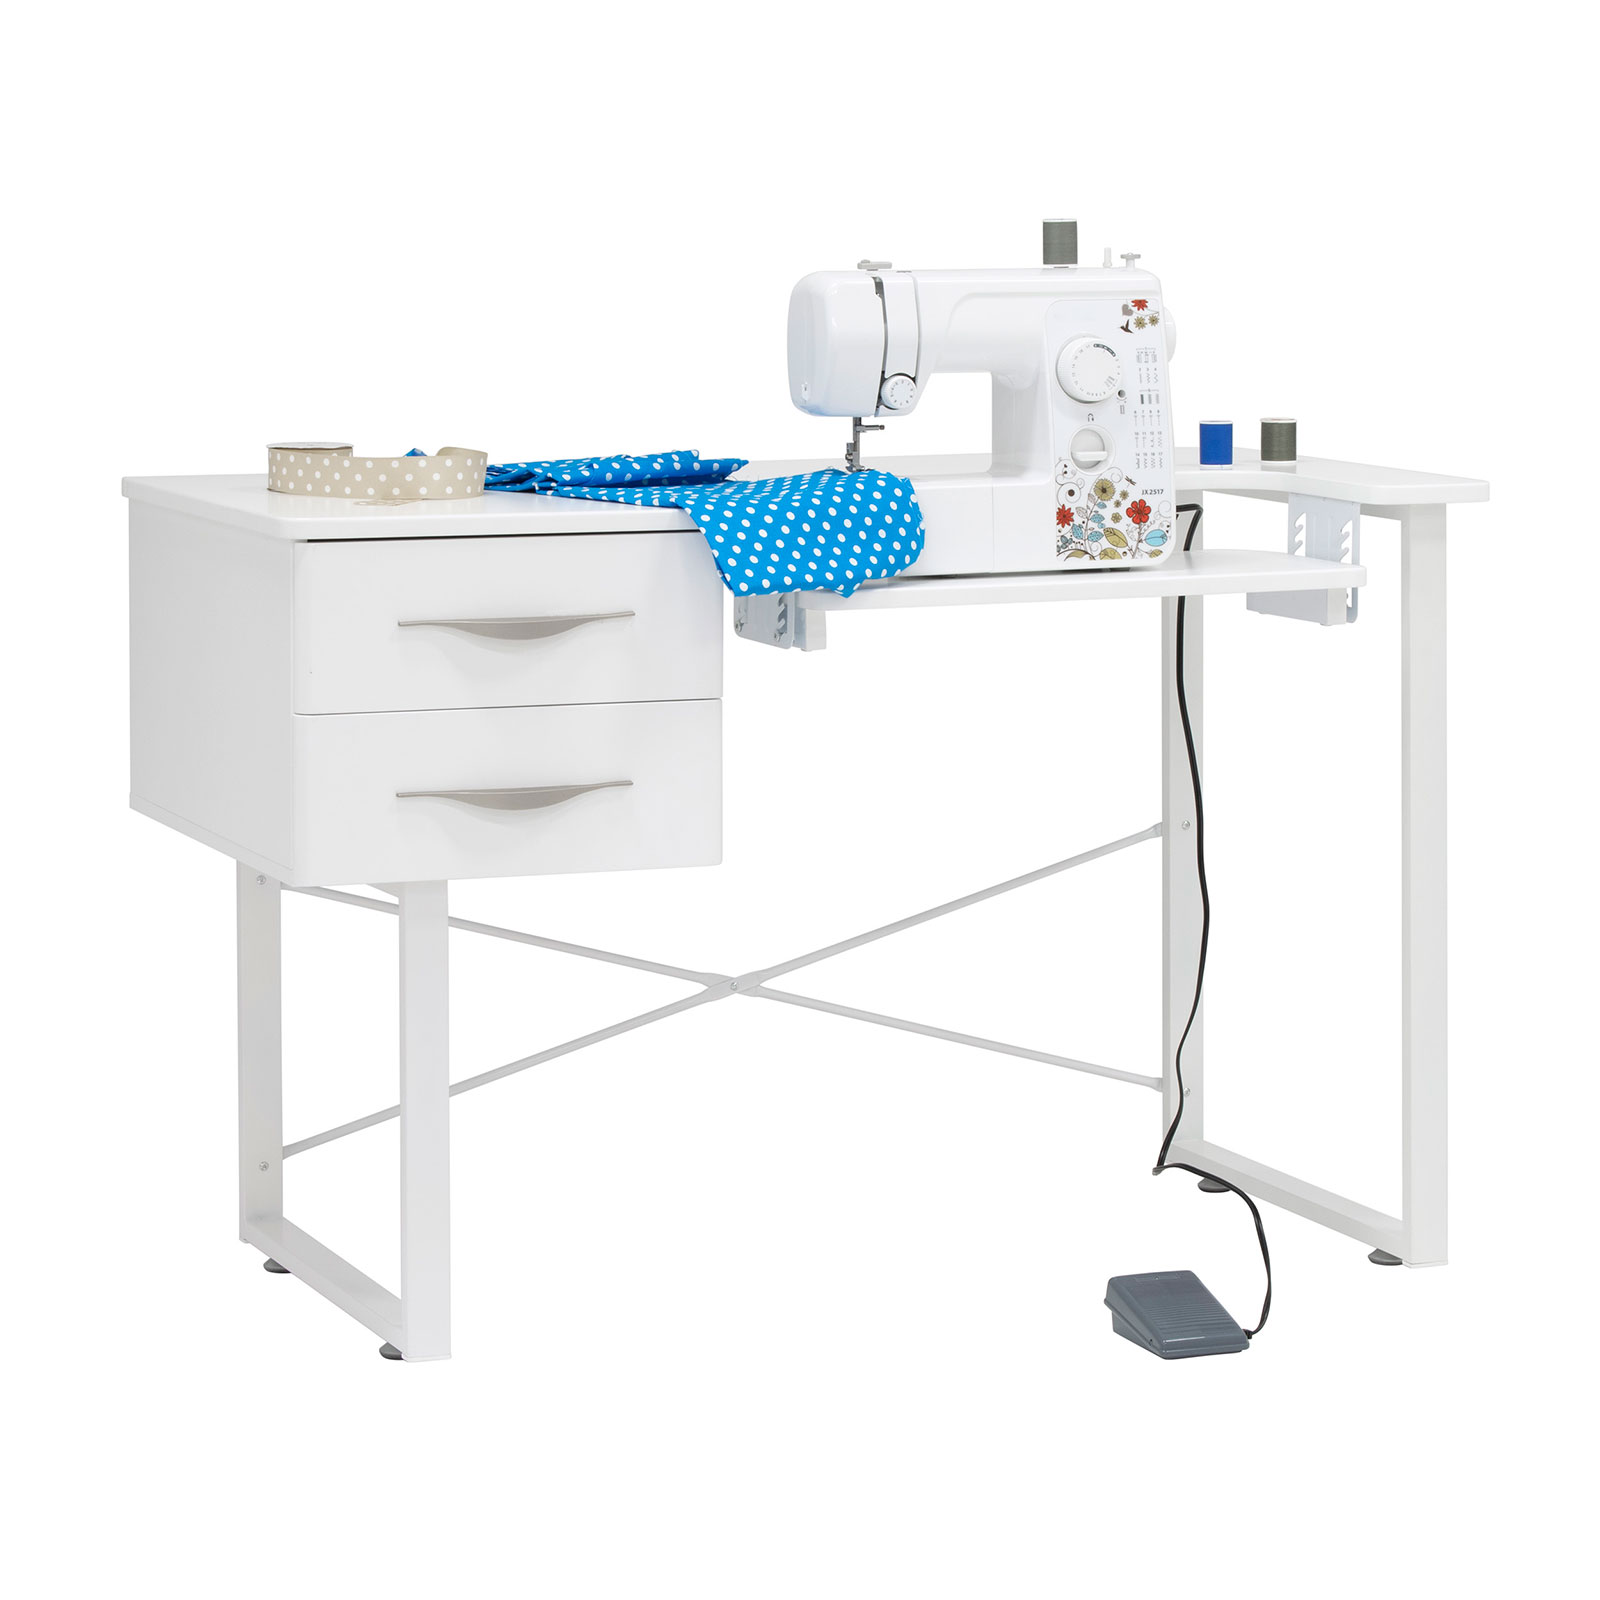 13398-Pro-Line-Sewing-Table-props1a